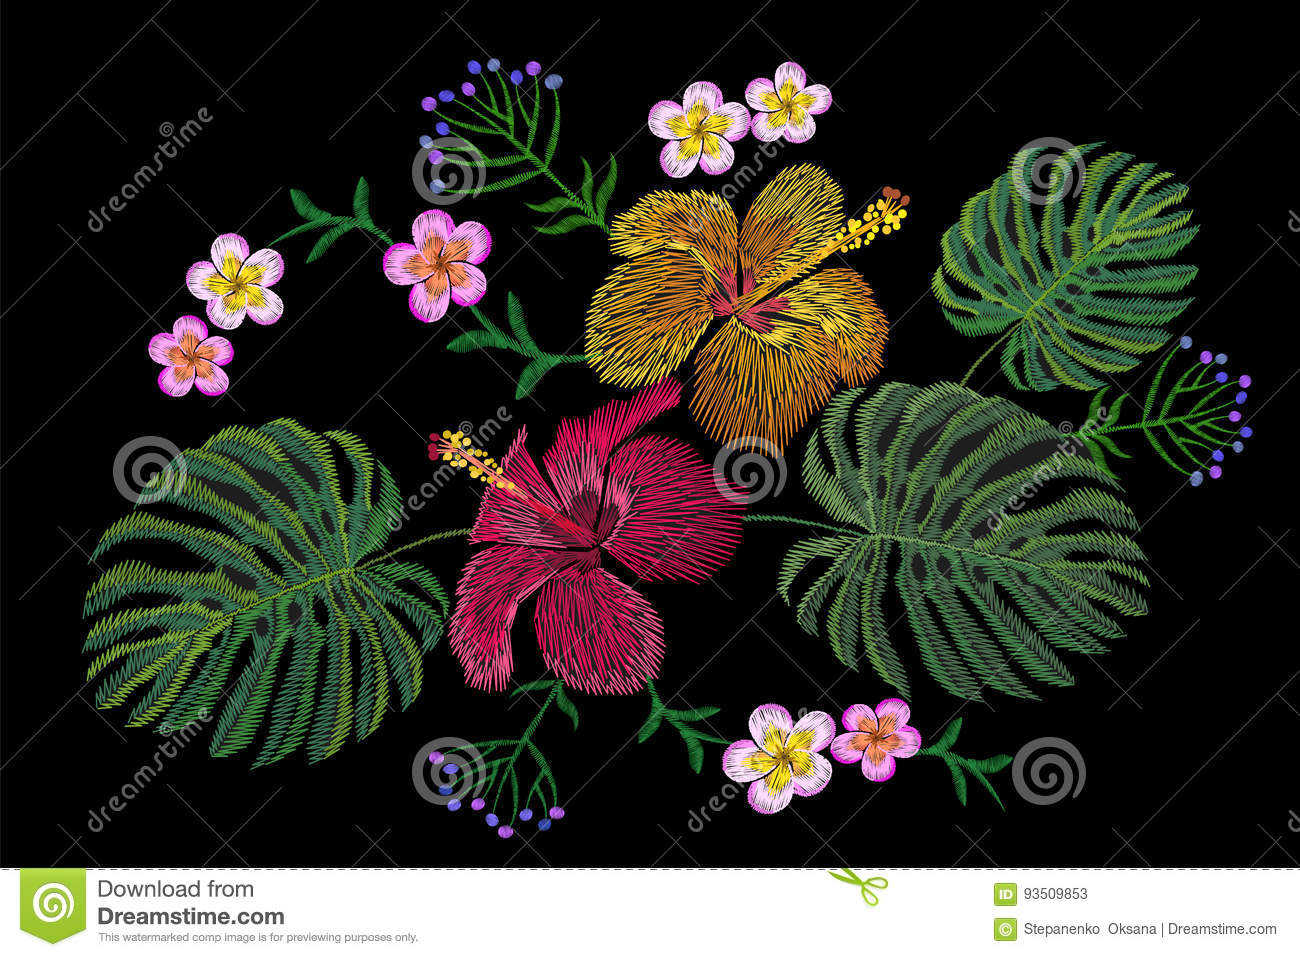 Tropical Embroidery Flower Arrangement Exotic Plant Blossom Summer Jungle Fashion Print